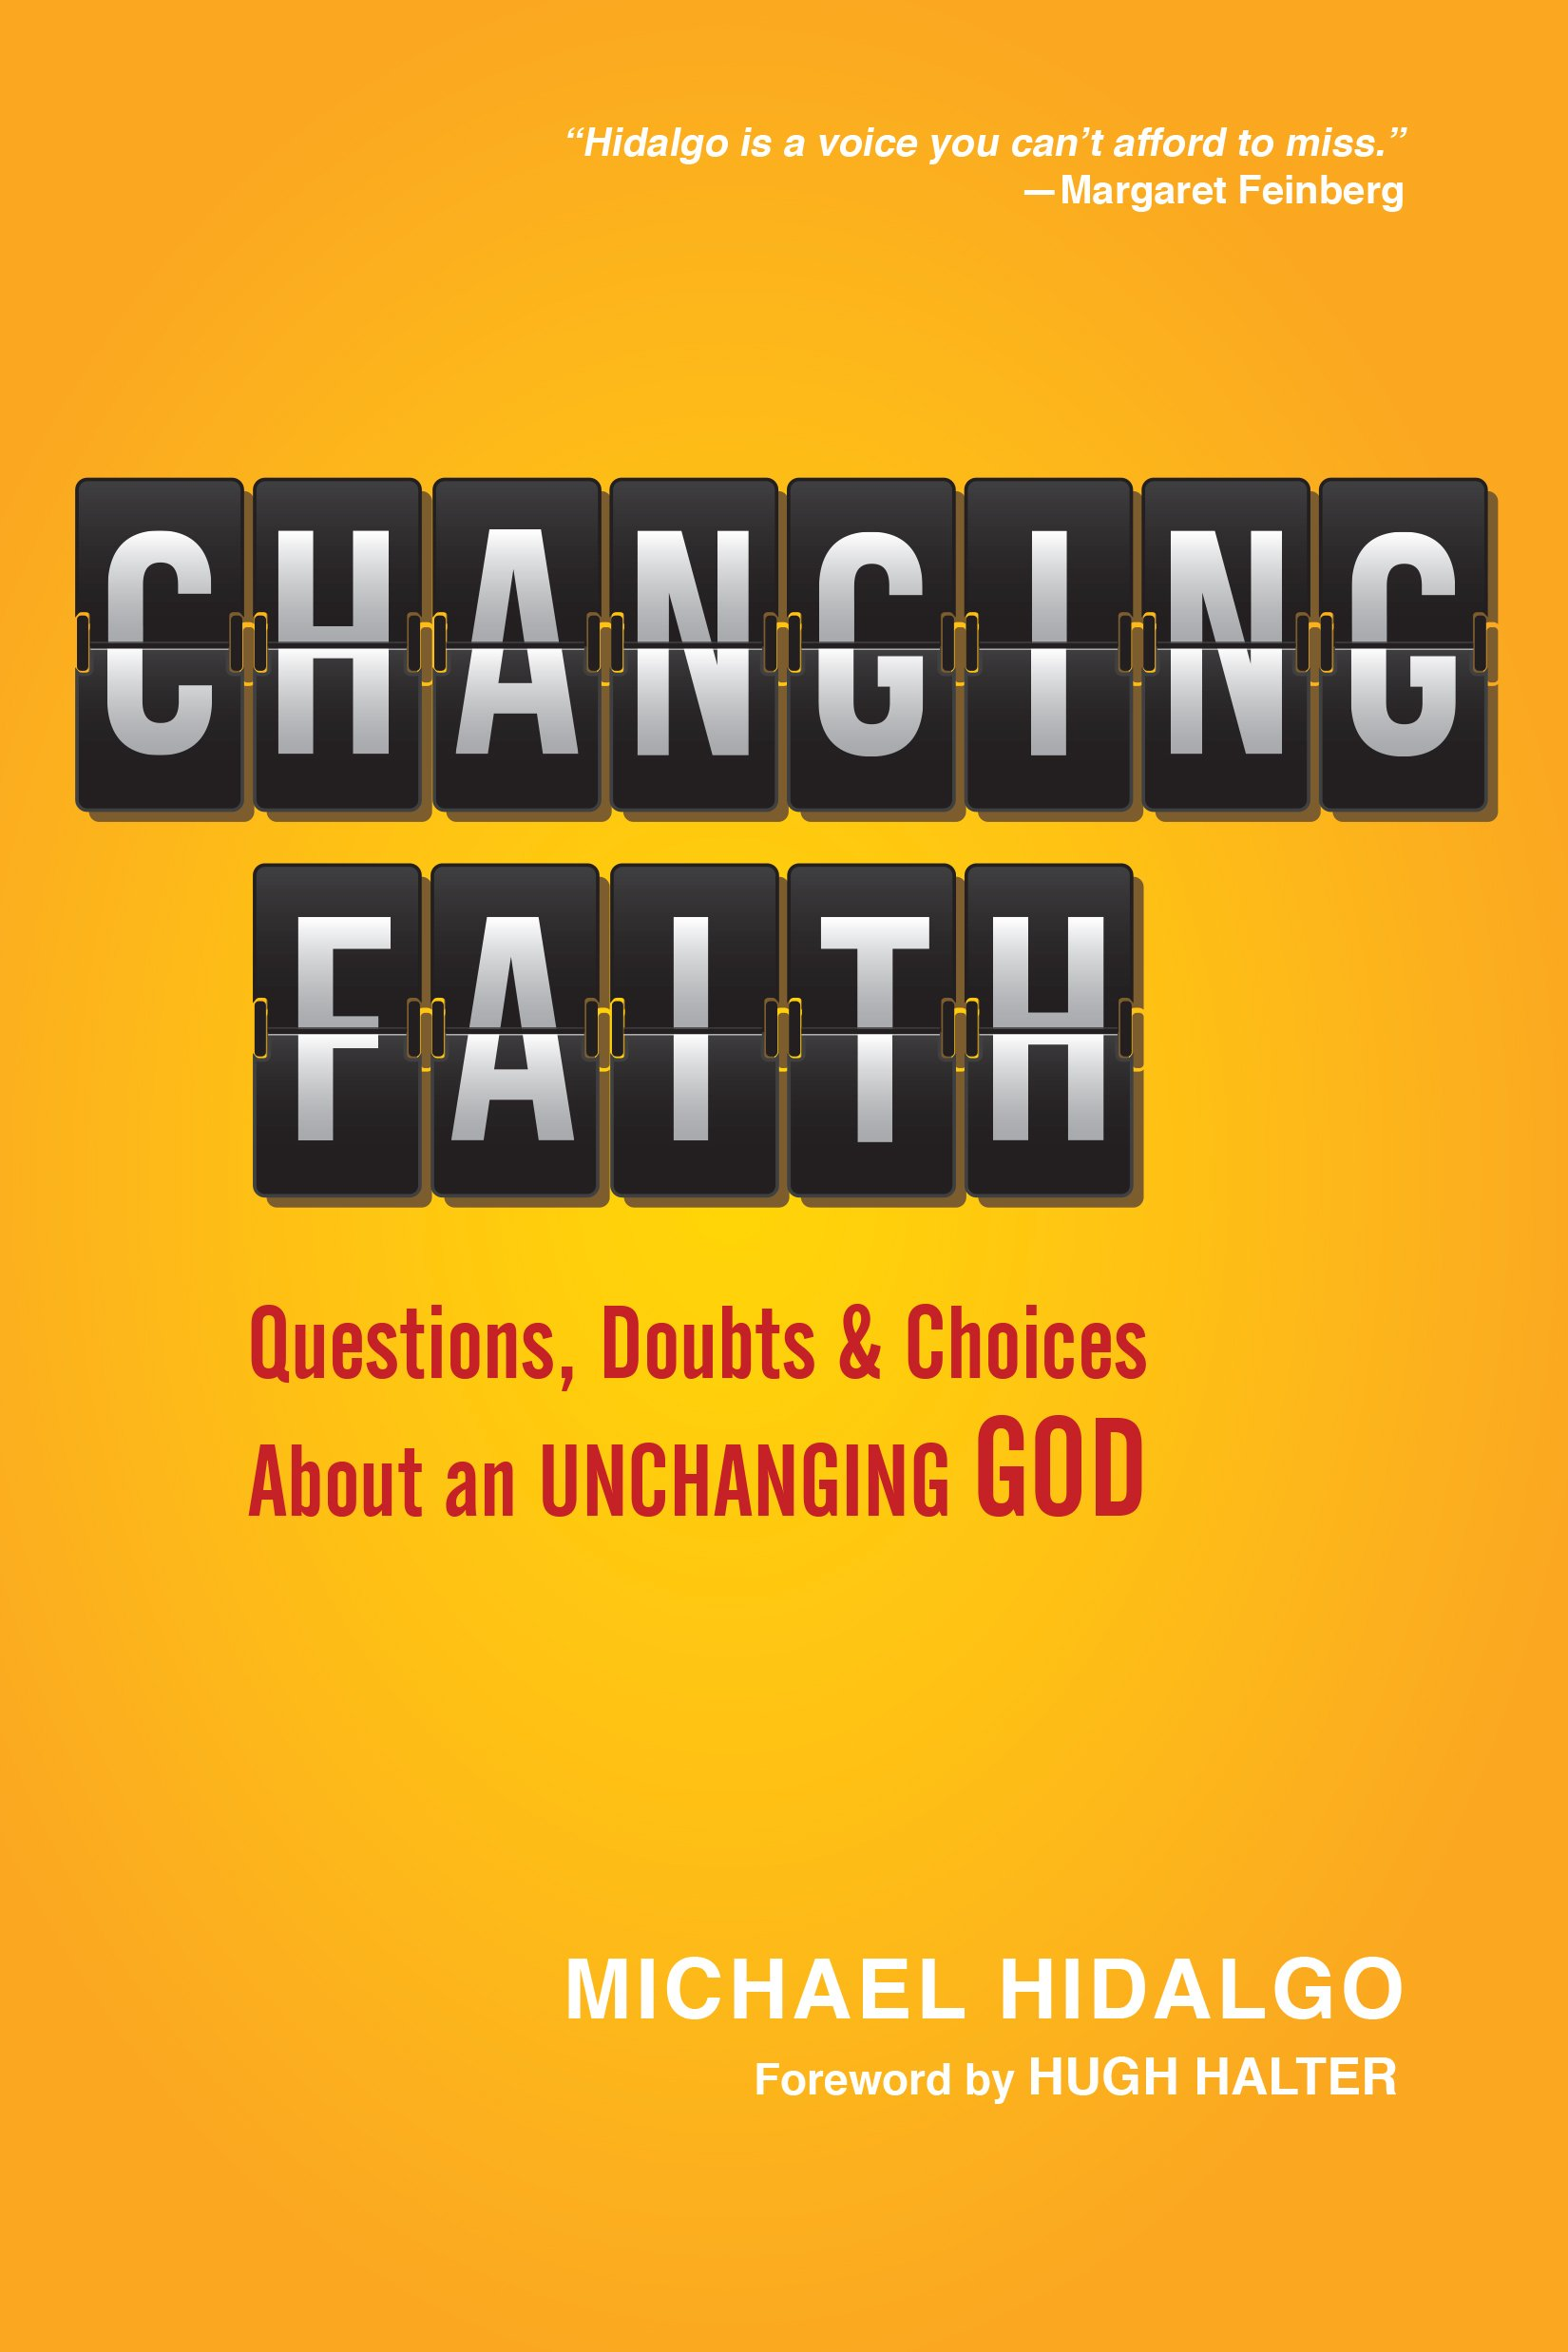 changing faith questions doubts and choices about an unchanging